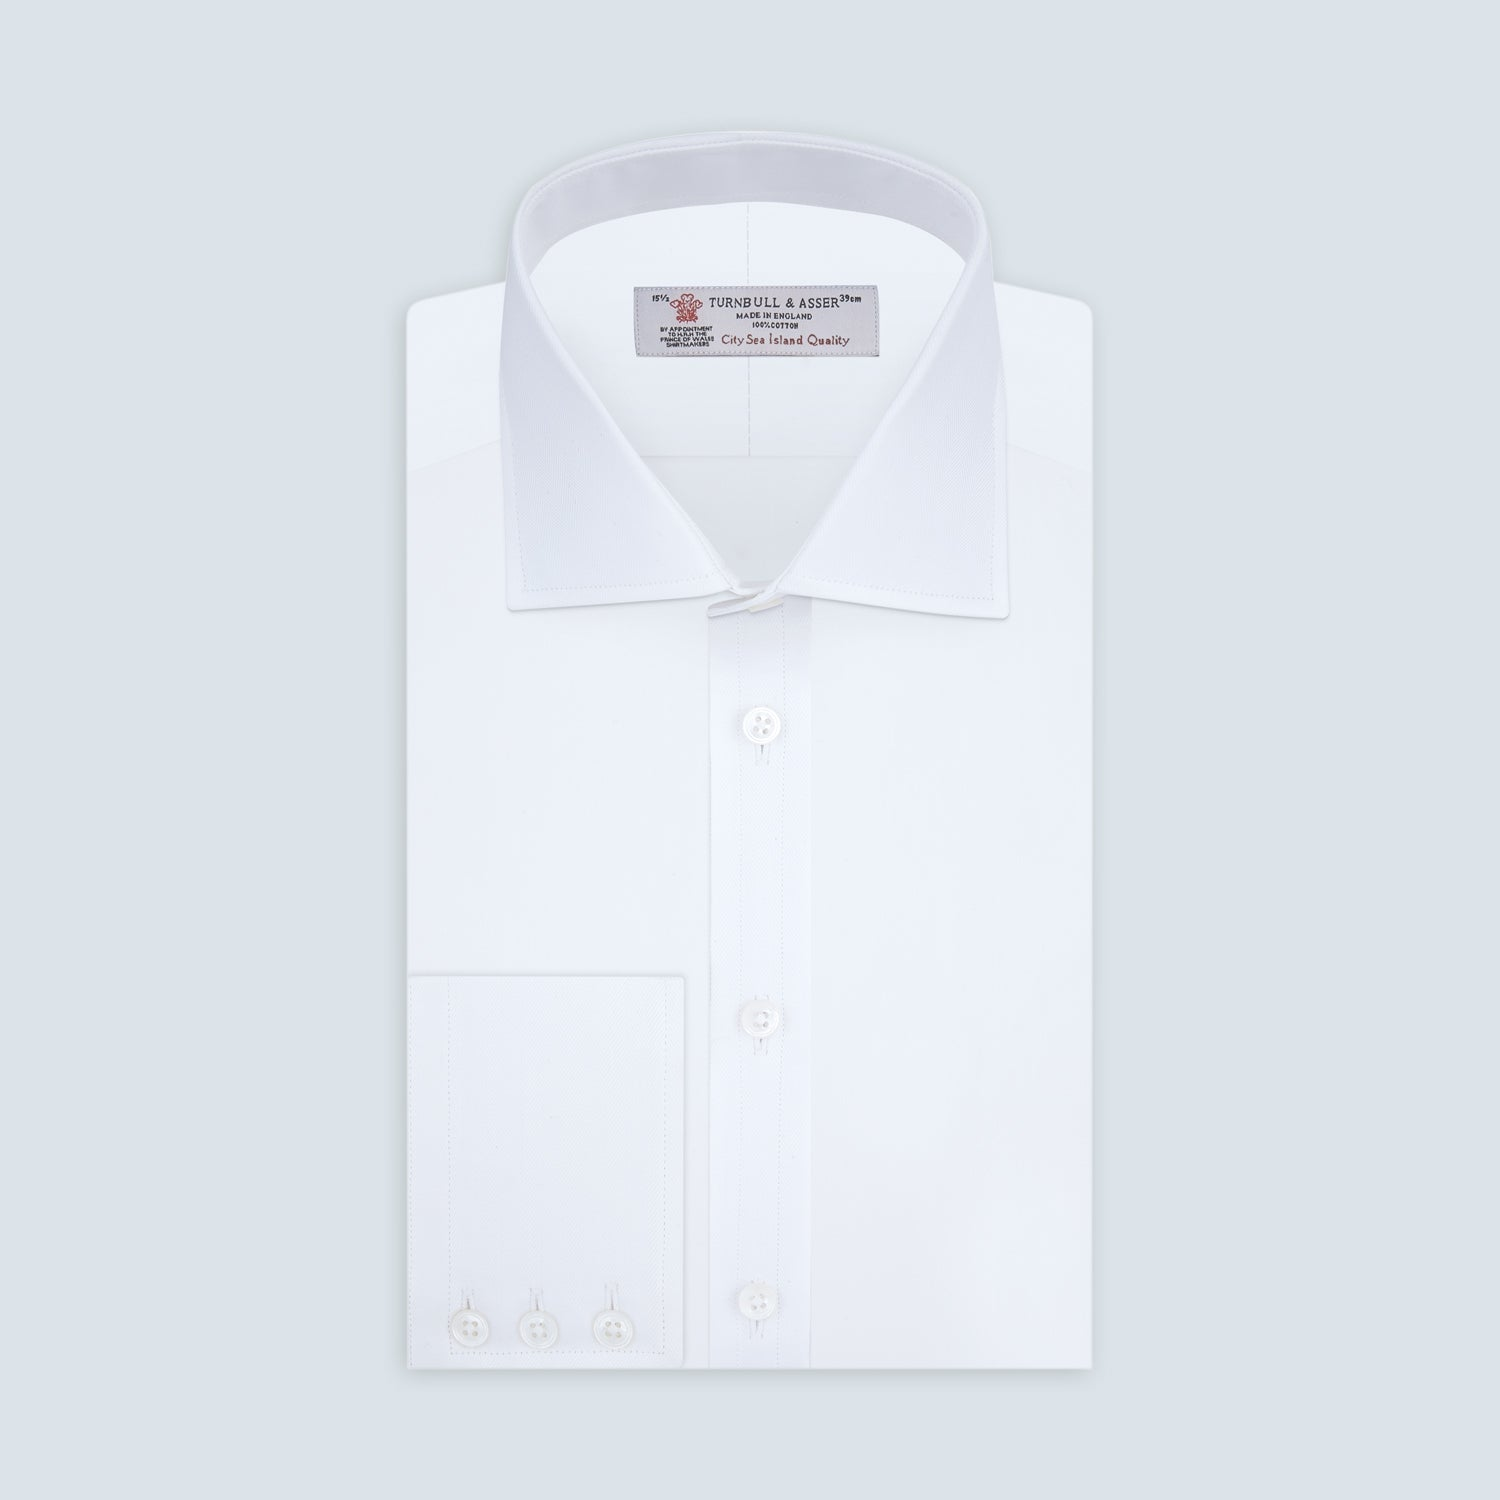 White West Indian Sea Island Cotton Shirt with T&A Collar and 3-Button Cuffs